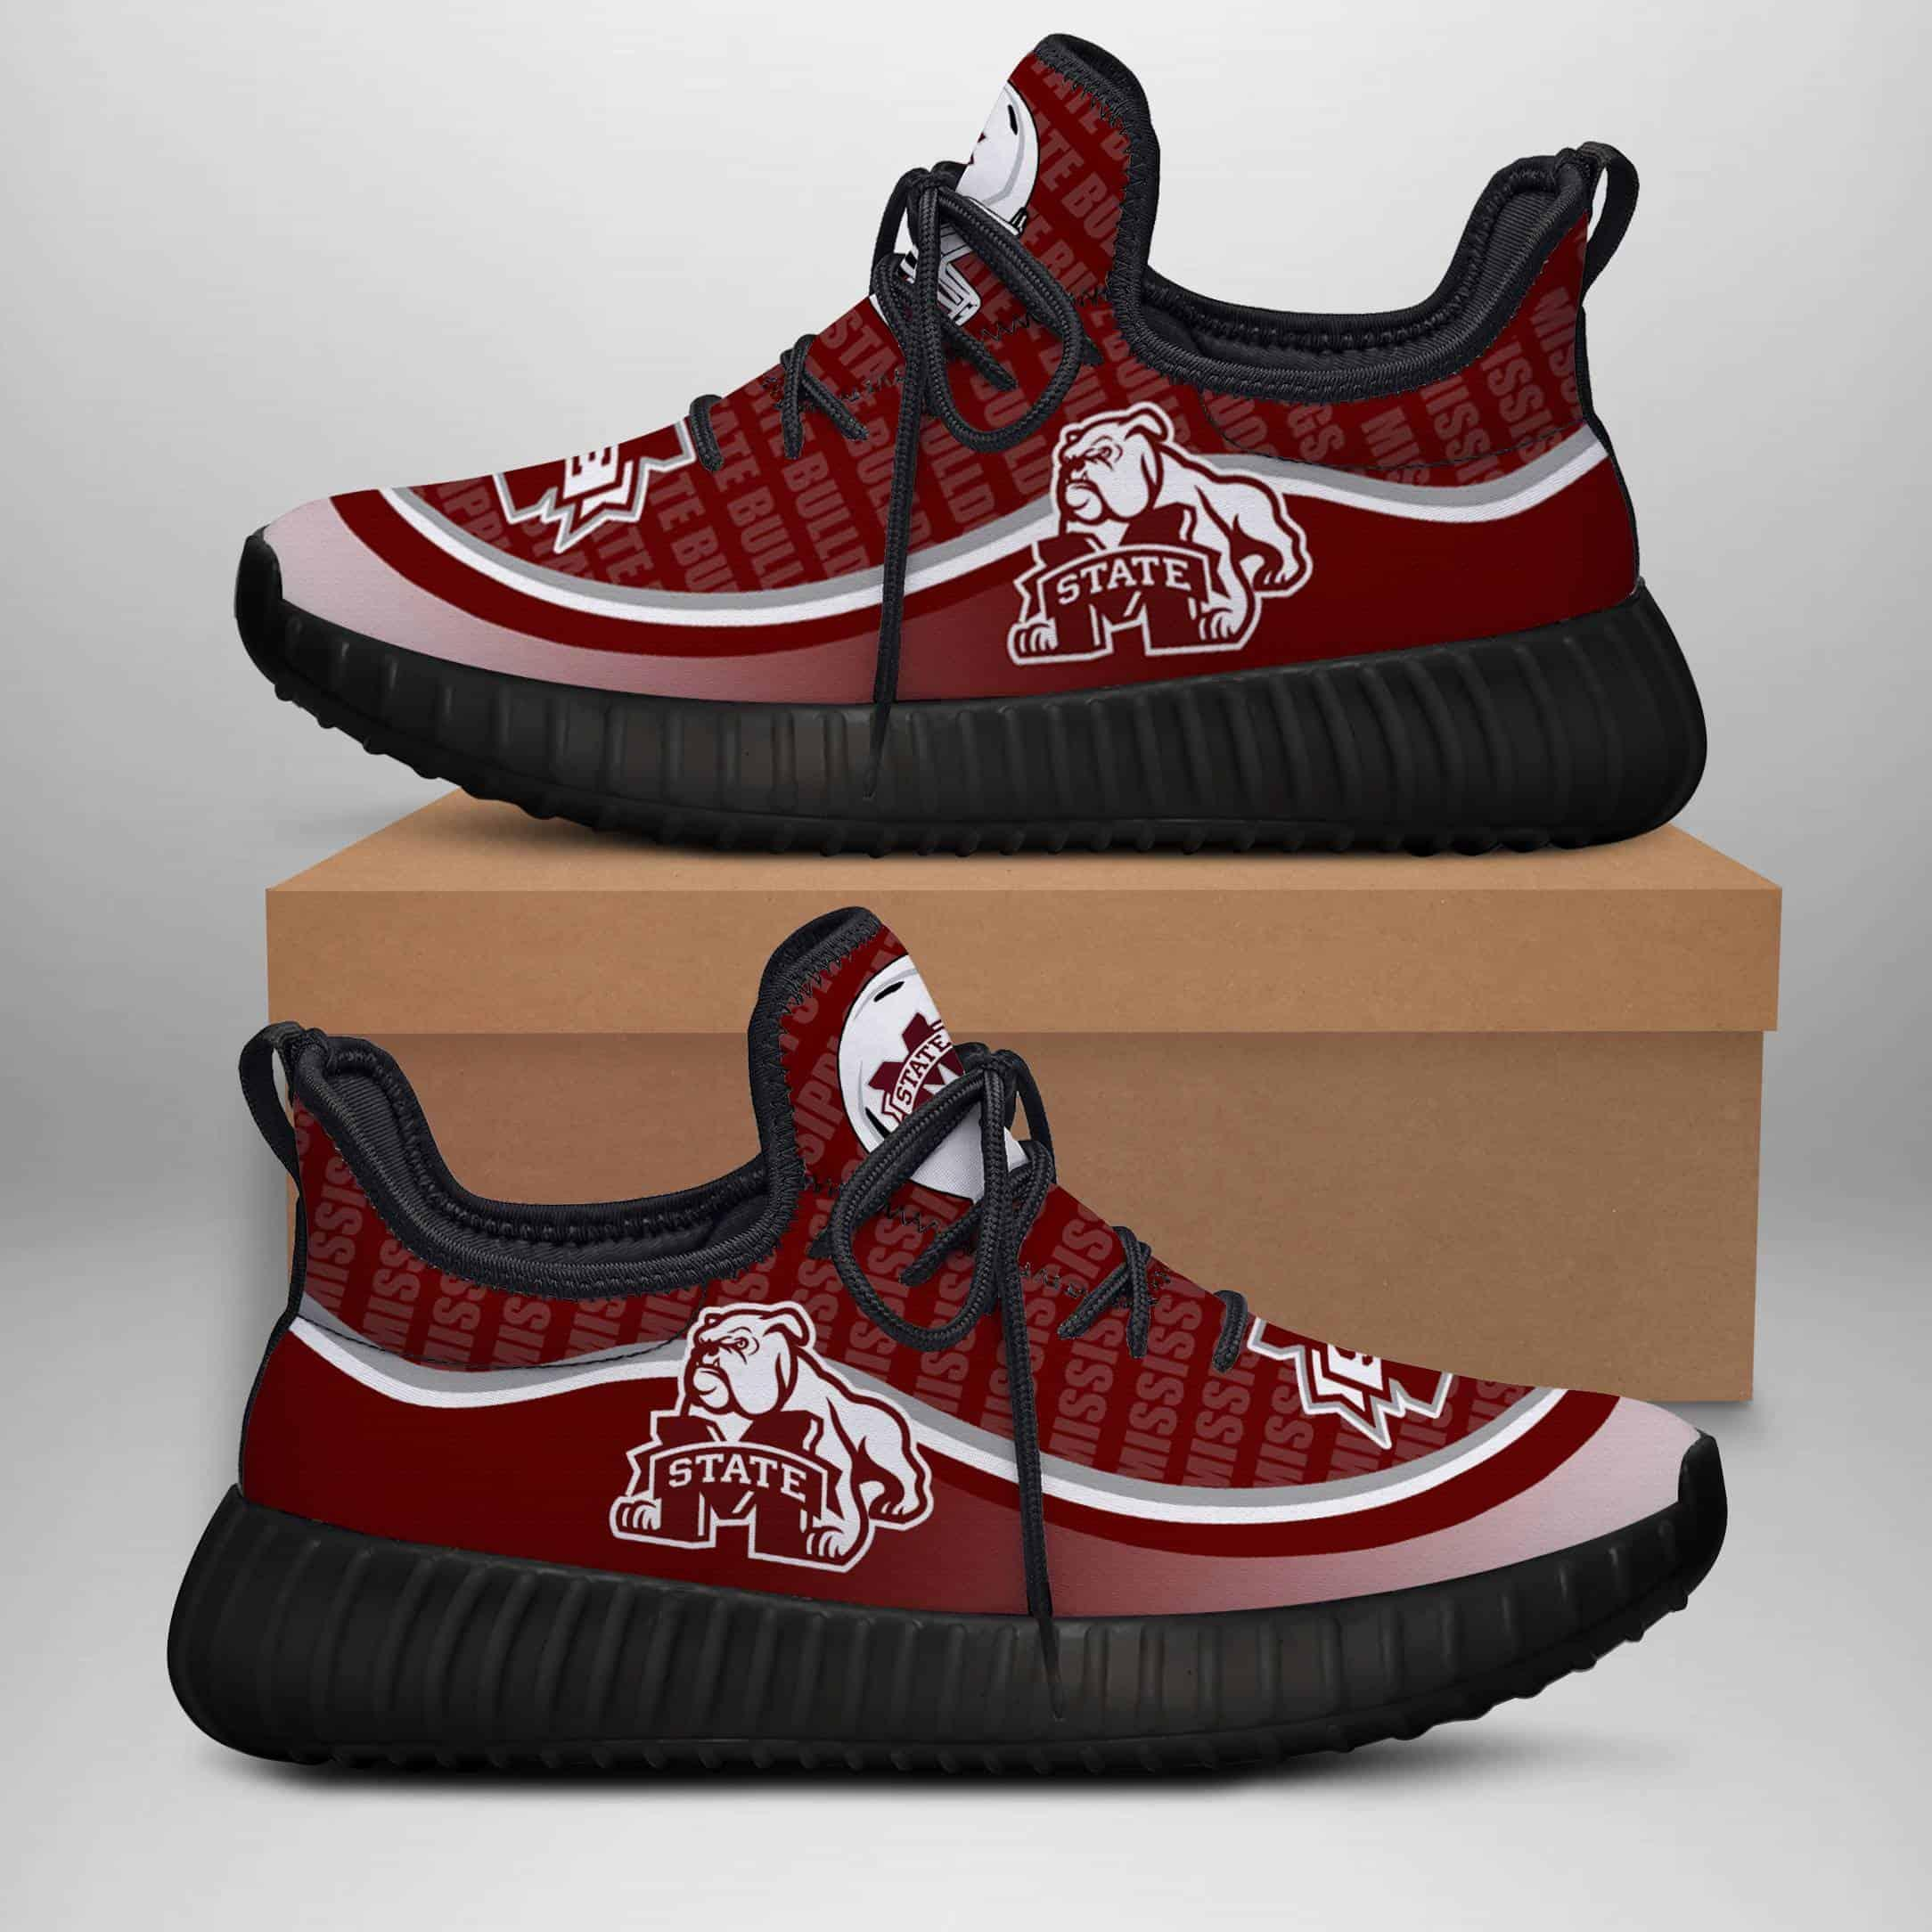 Mississippi State Bulldogs New Sneaker